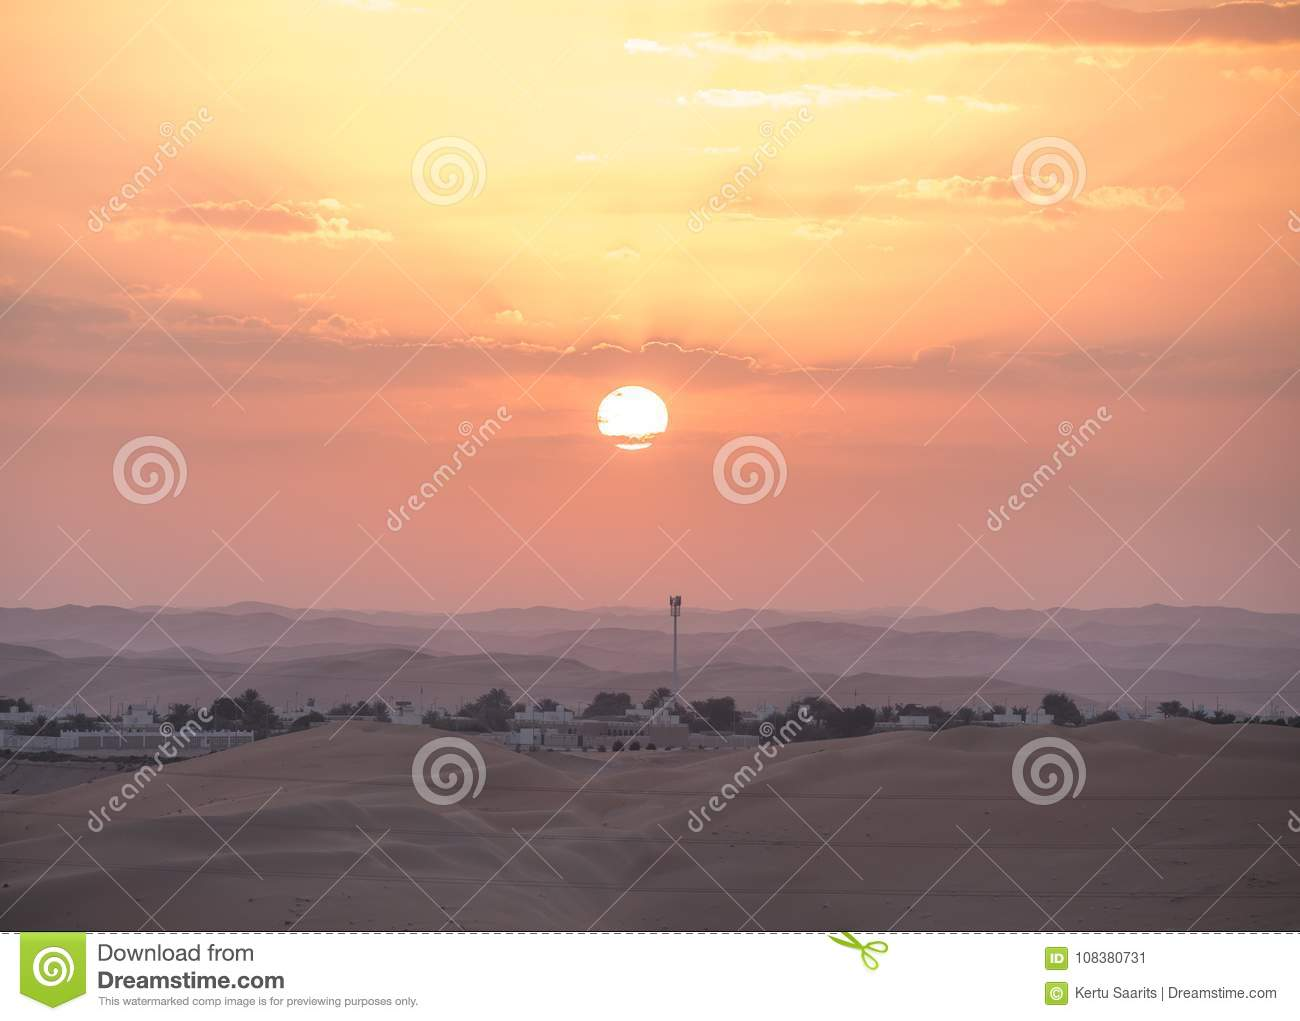 Beautiful Desert Sunrise Over A Beduin Village  Stock Image - Image